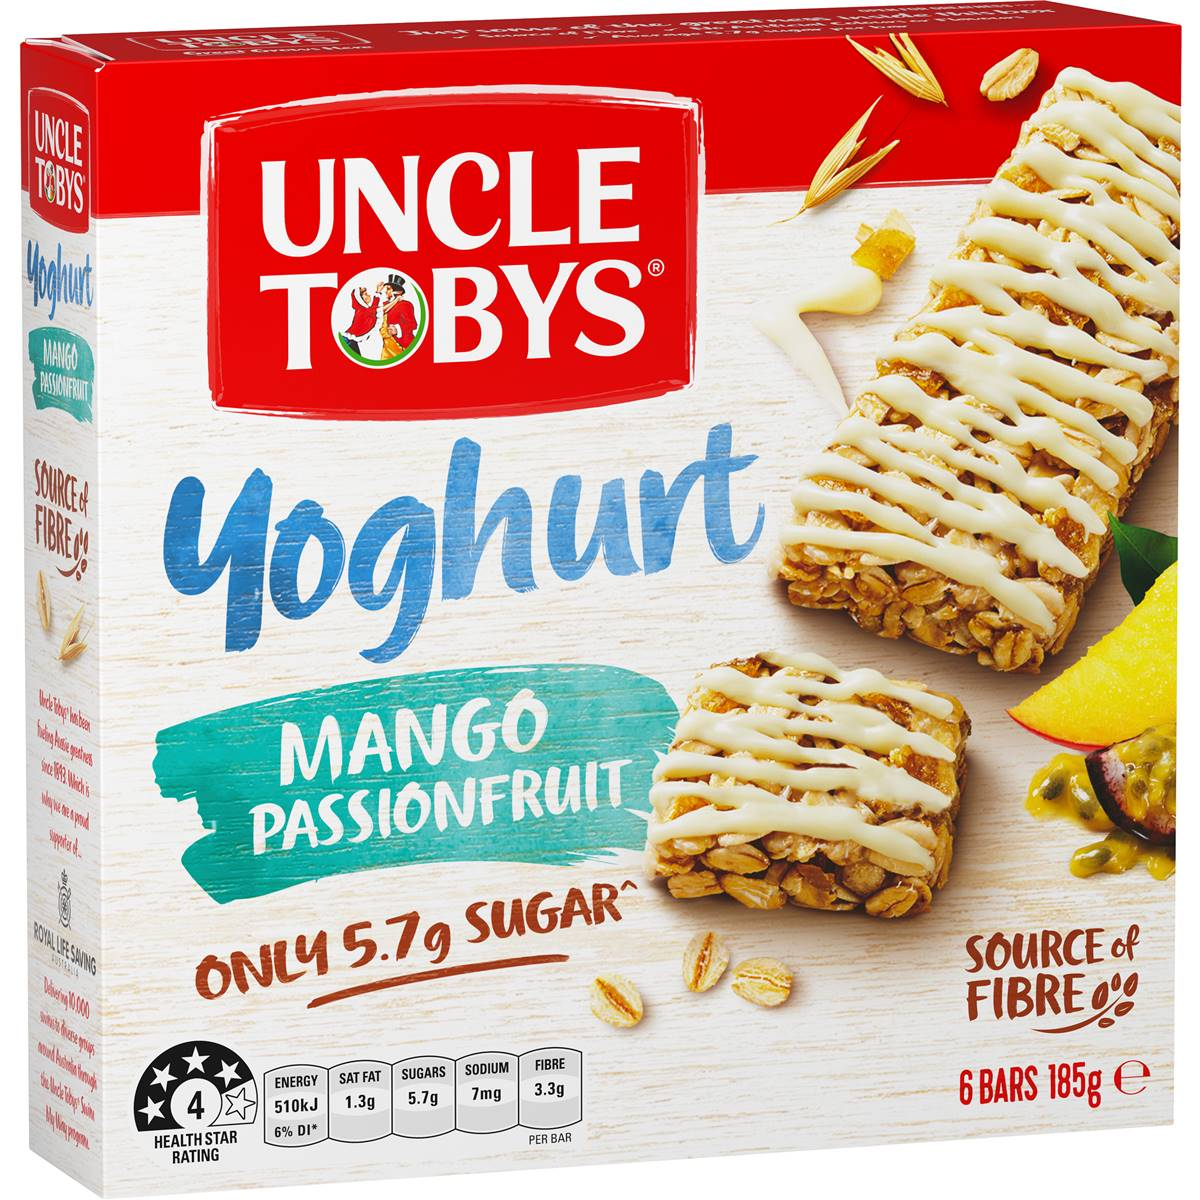 uncle tobys Uncle tobys bran plus: 4 customer reviews on australia's largest opinion site productreviewcomau 48 out of 5 stars for uncle tobys bran plus in breakfast cereal.